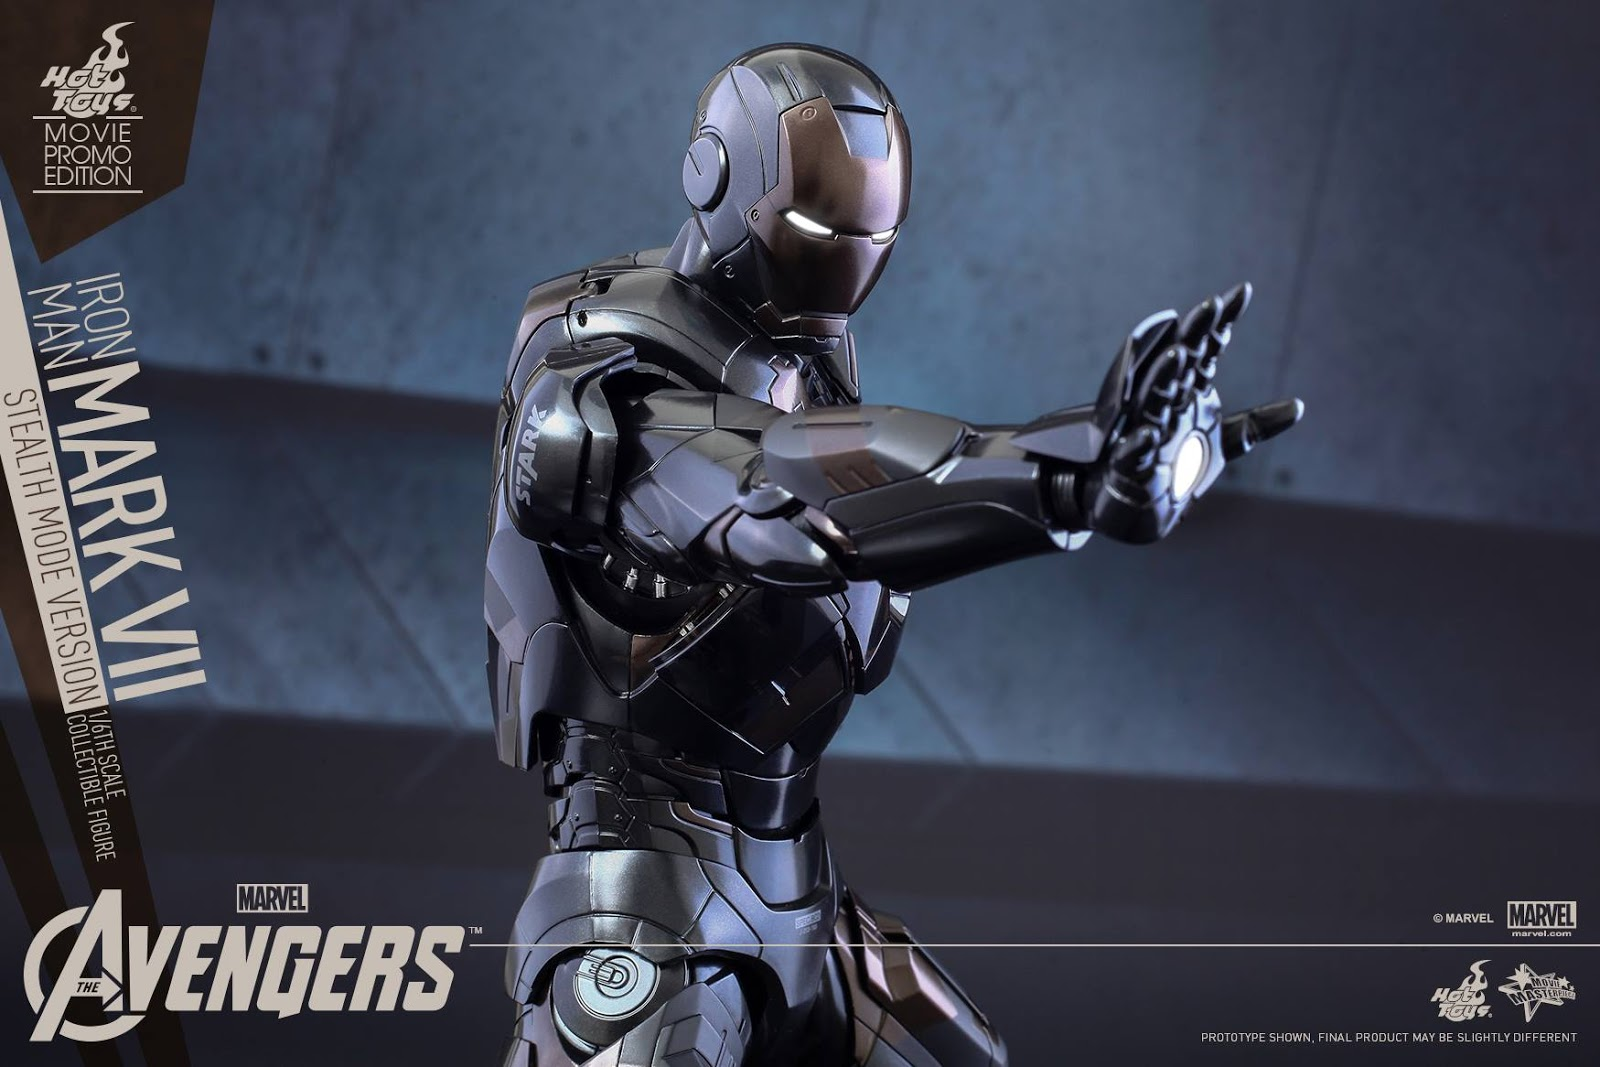 The Avengers: 1/6th scale Mark VII (Stealth Mode Version) WOLVERINE